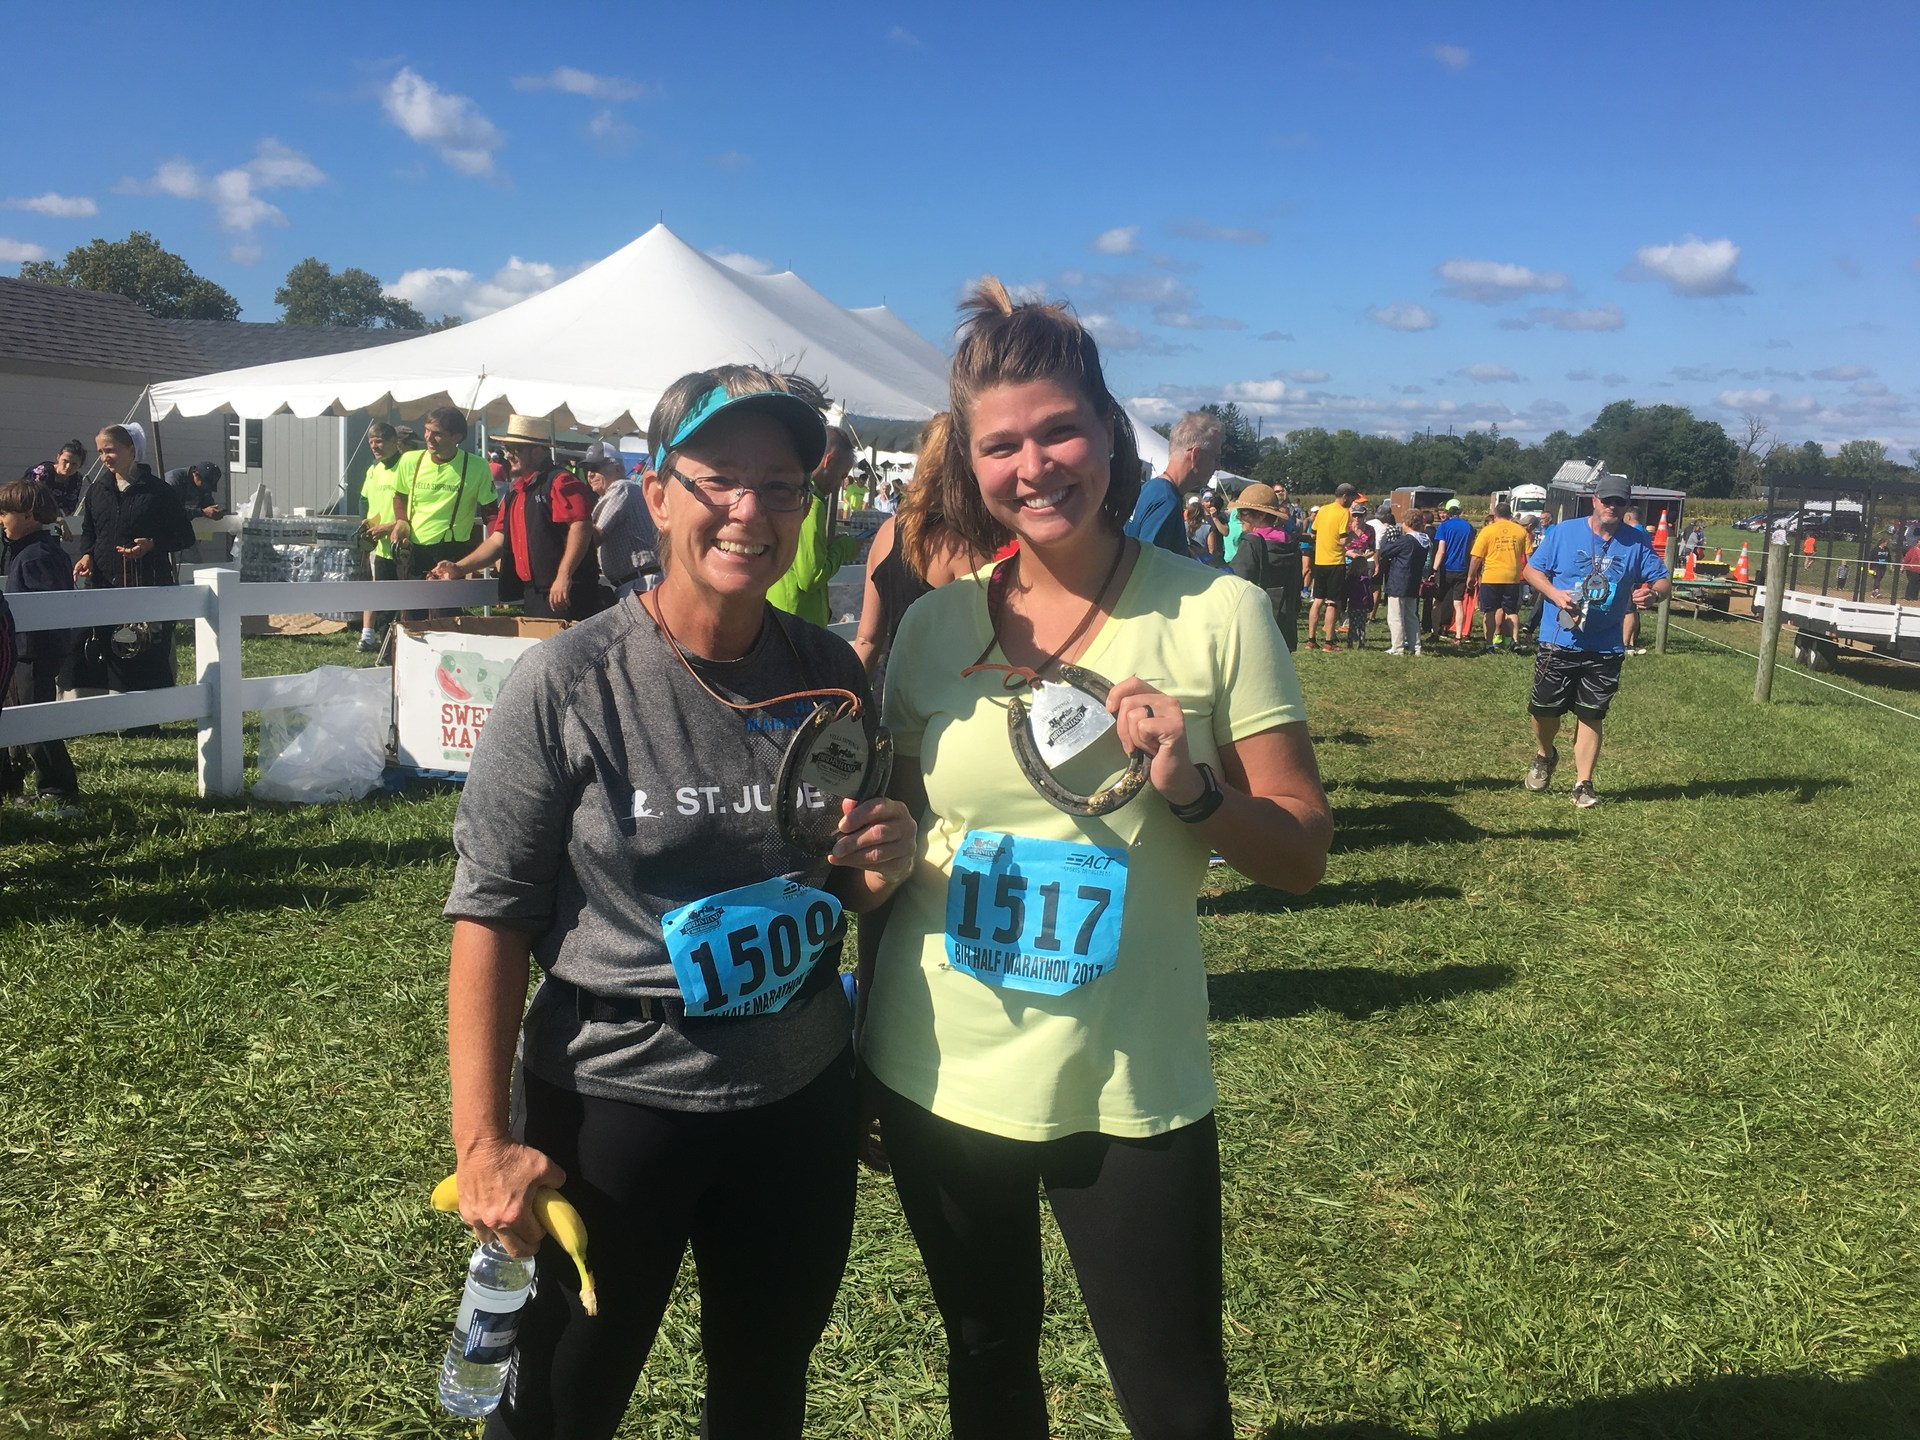 Janell Hill and I ran the half-marathon Sept. 9 in Bird-in-Hand, Pennsylvania.